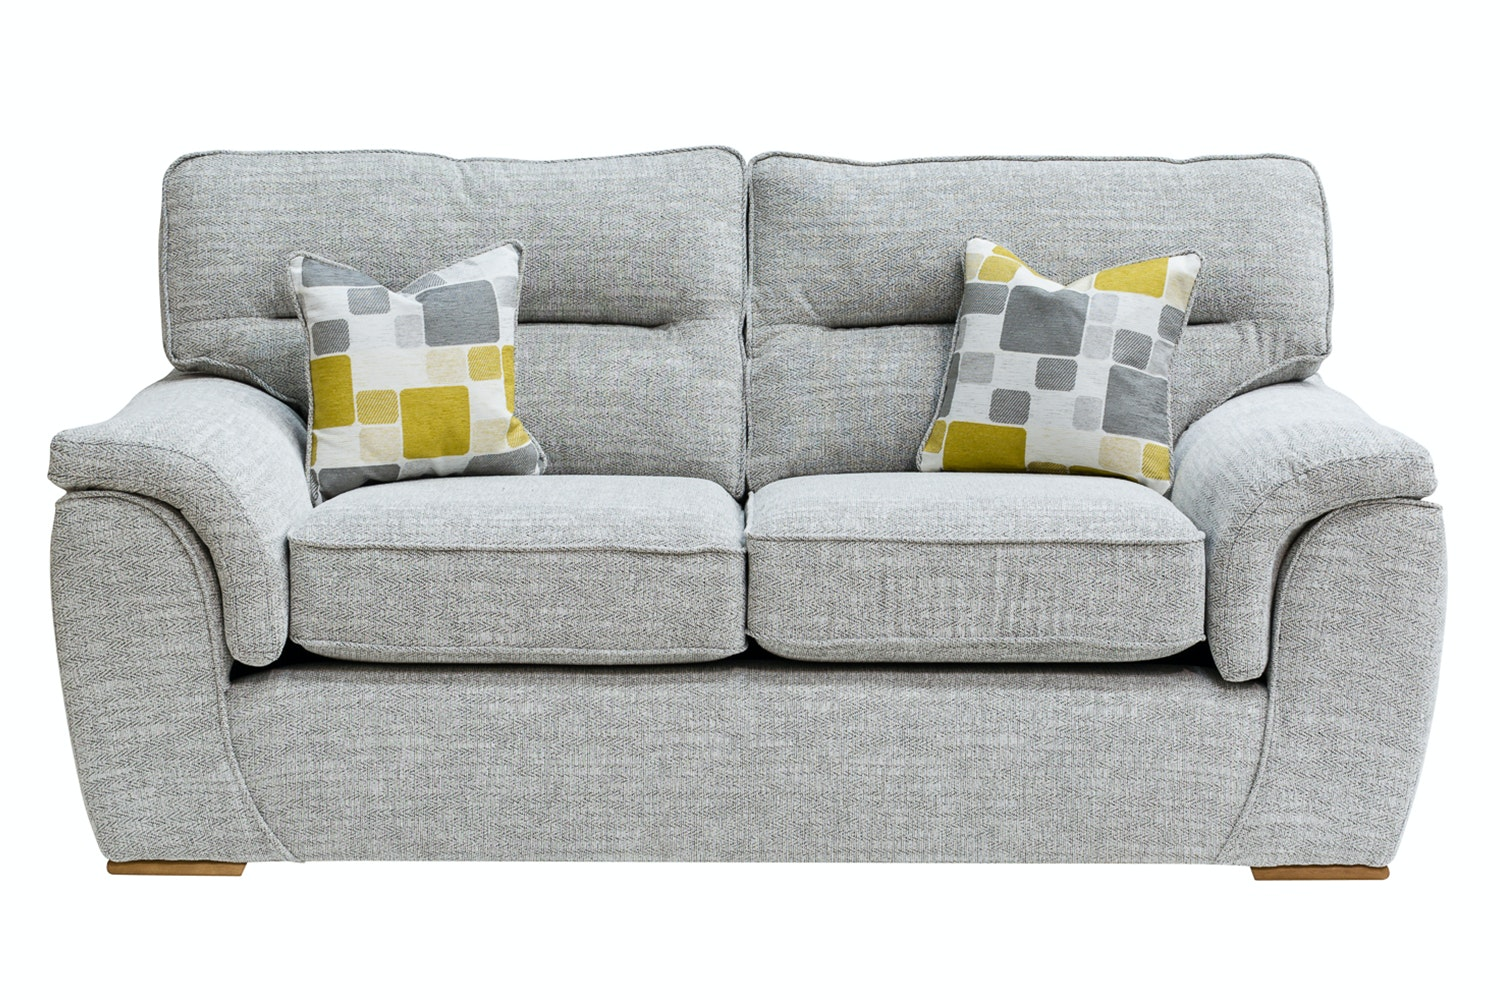 Sadie 2 Seater Sofa | 5 Colour Options